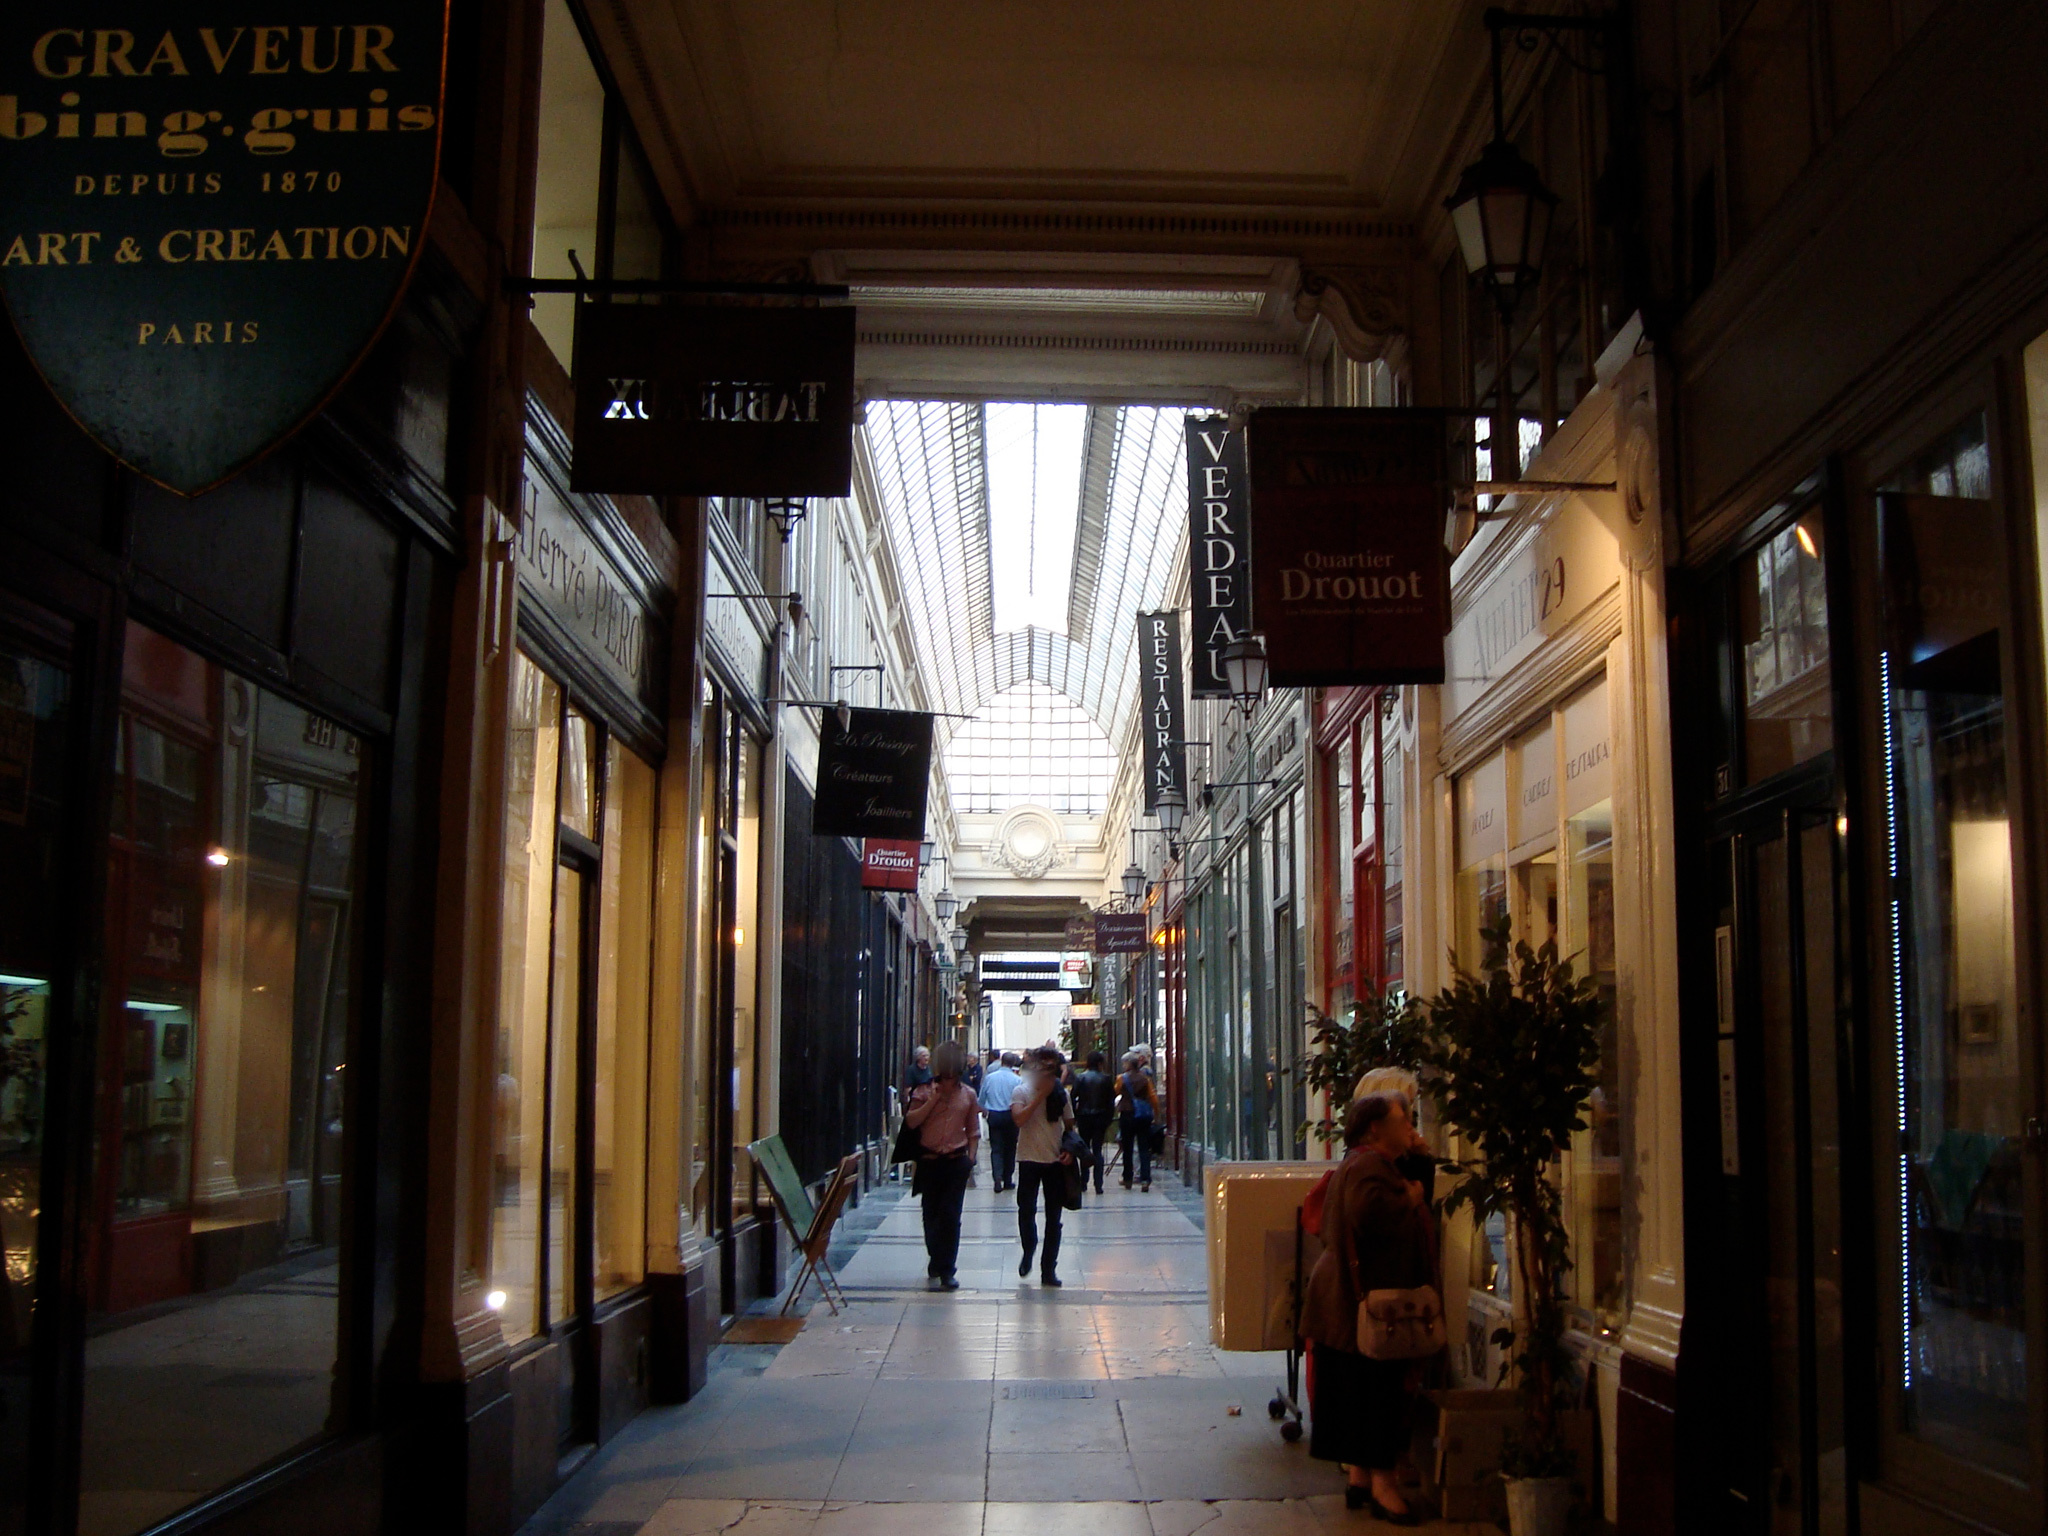 Inside the Passage Verdeau covered passage in Paris